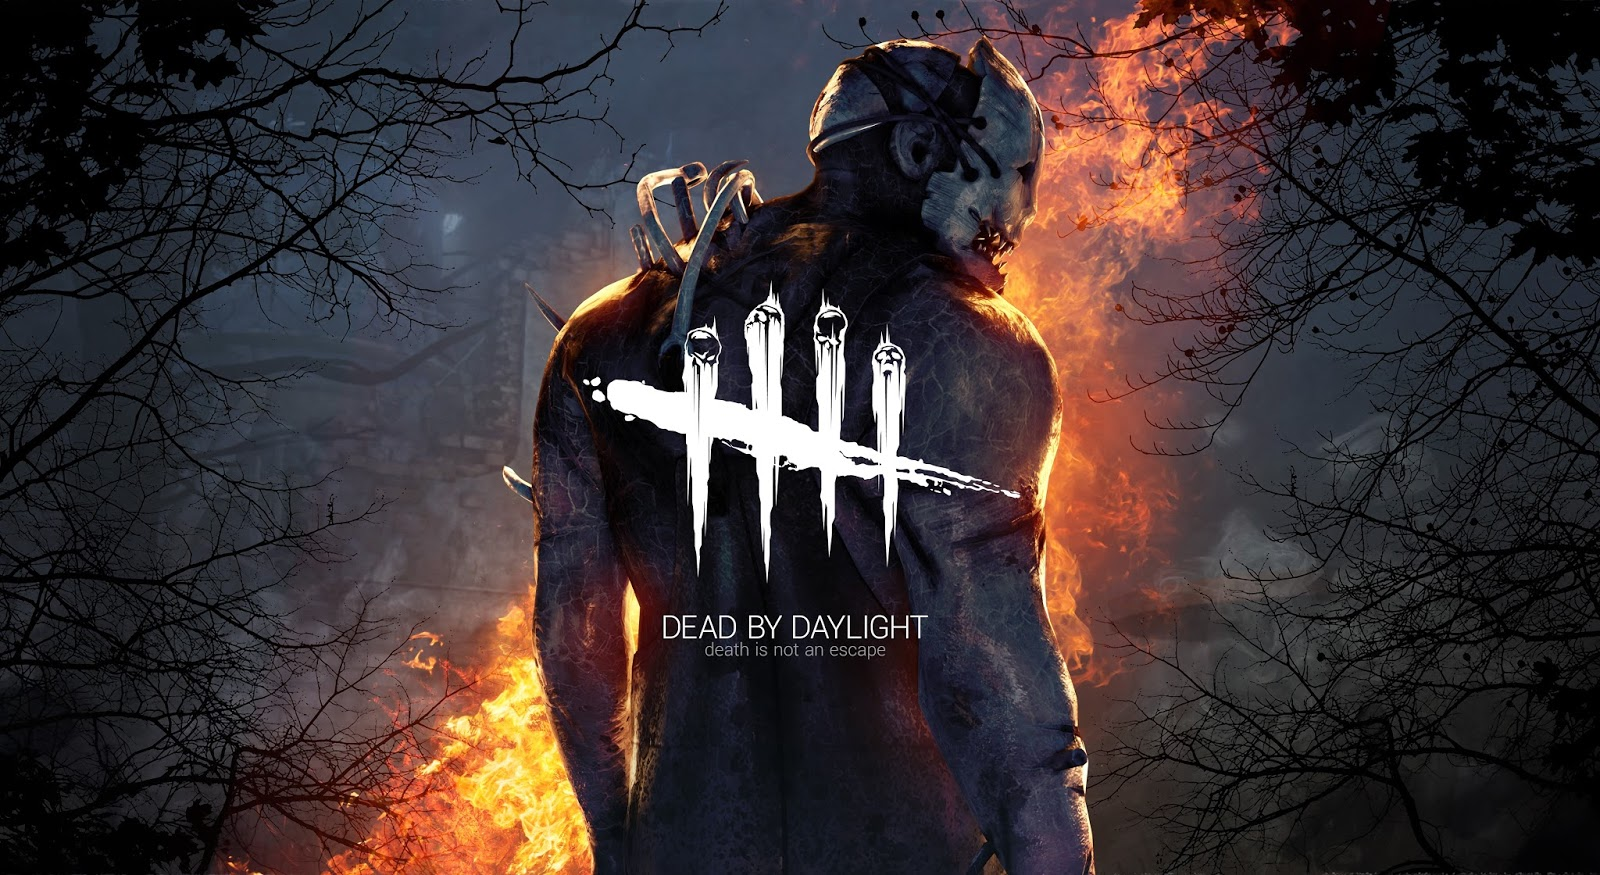 Dead by daylight 1 0 2d multiplayer cracked steam